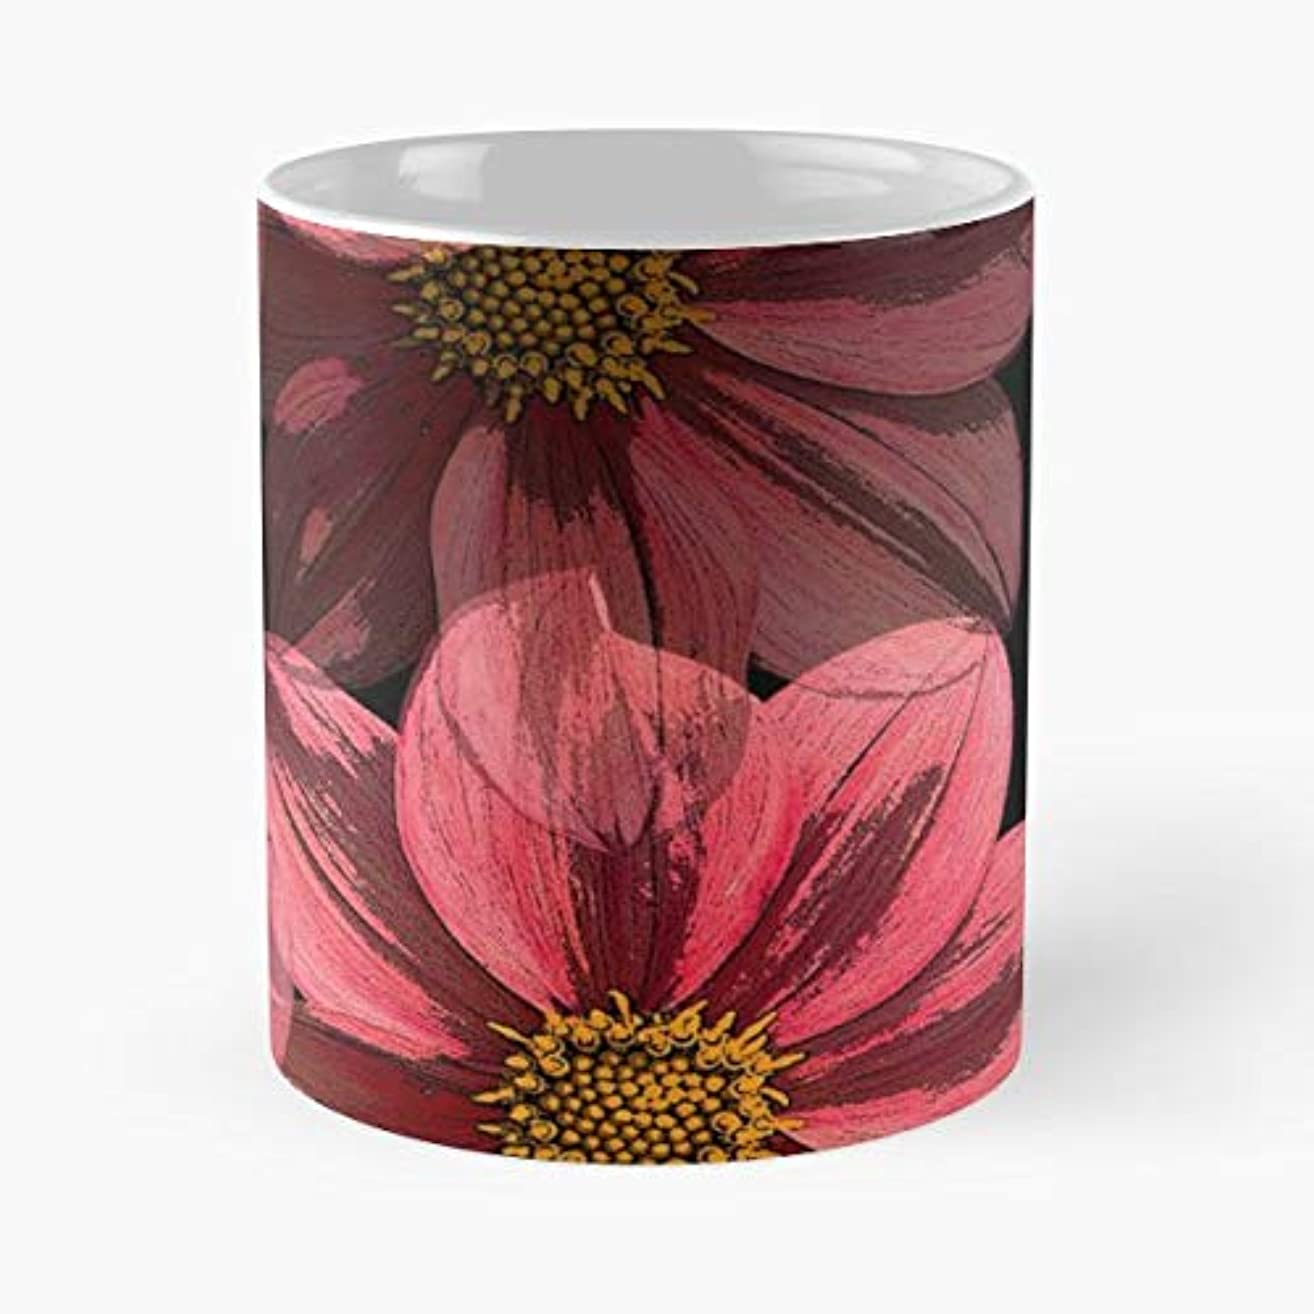 Floral Nature London - 11 Oz Coffee Mugs Unique Ceramic Novelty Cup, The Best Gift For Holidays.